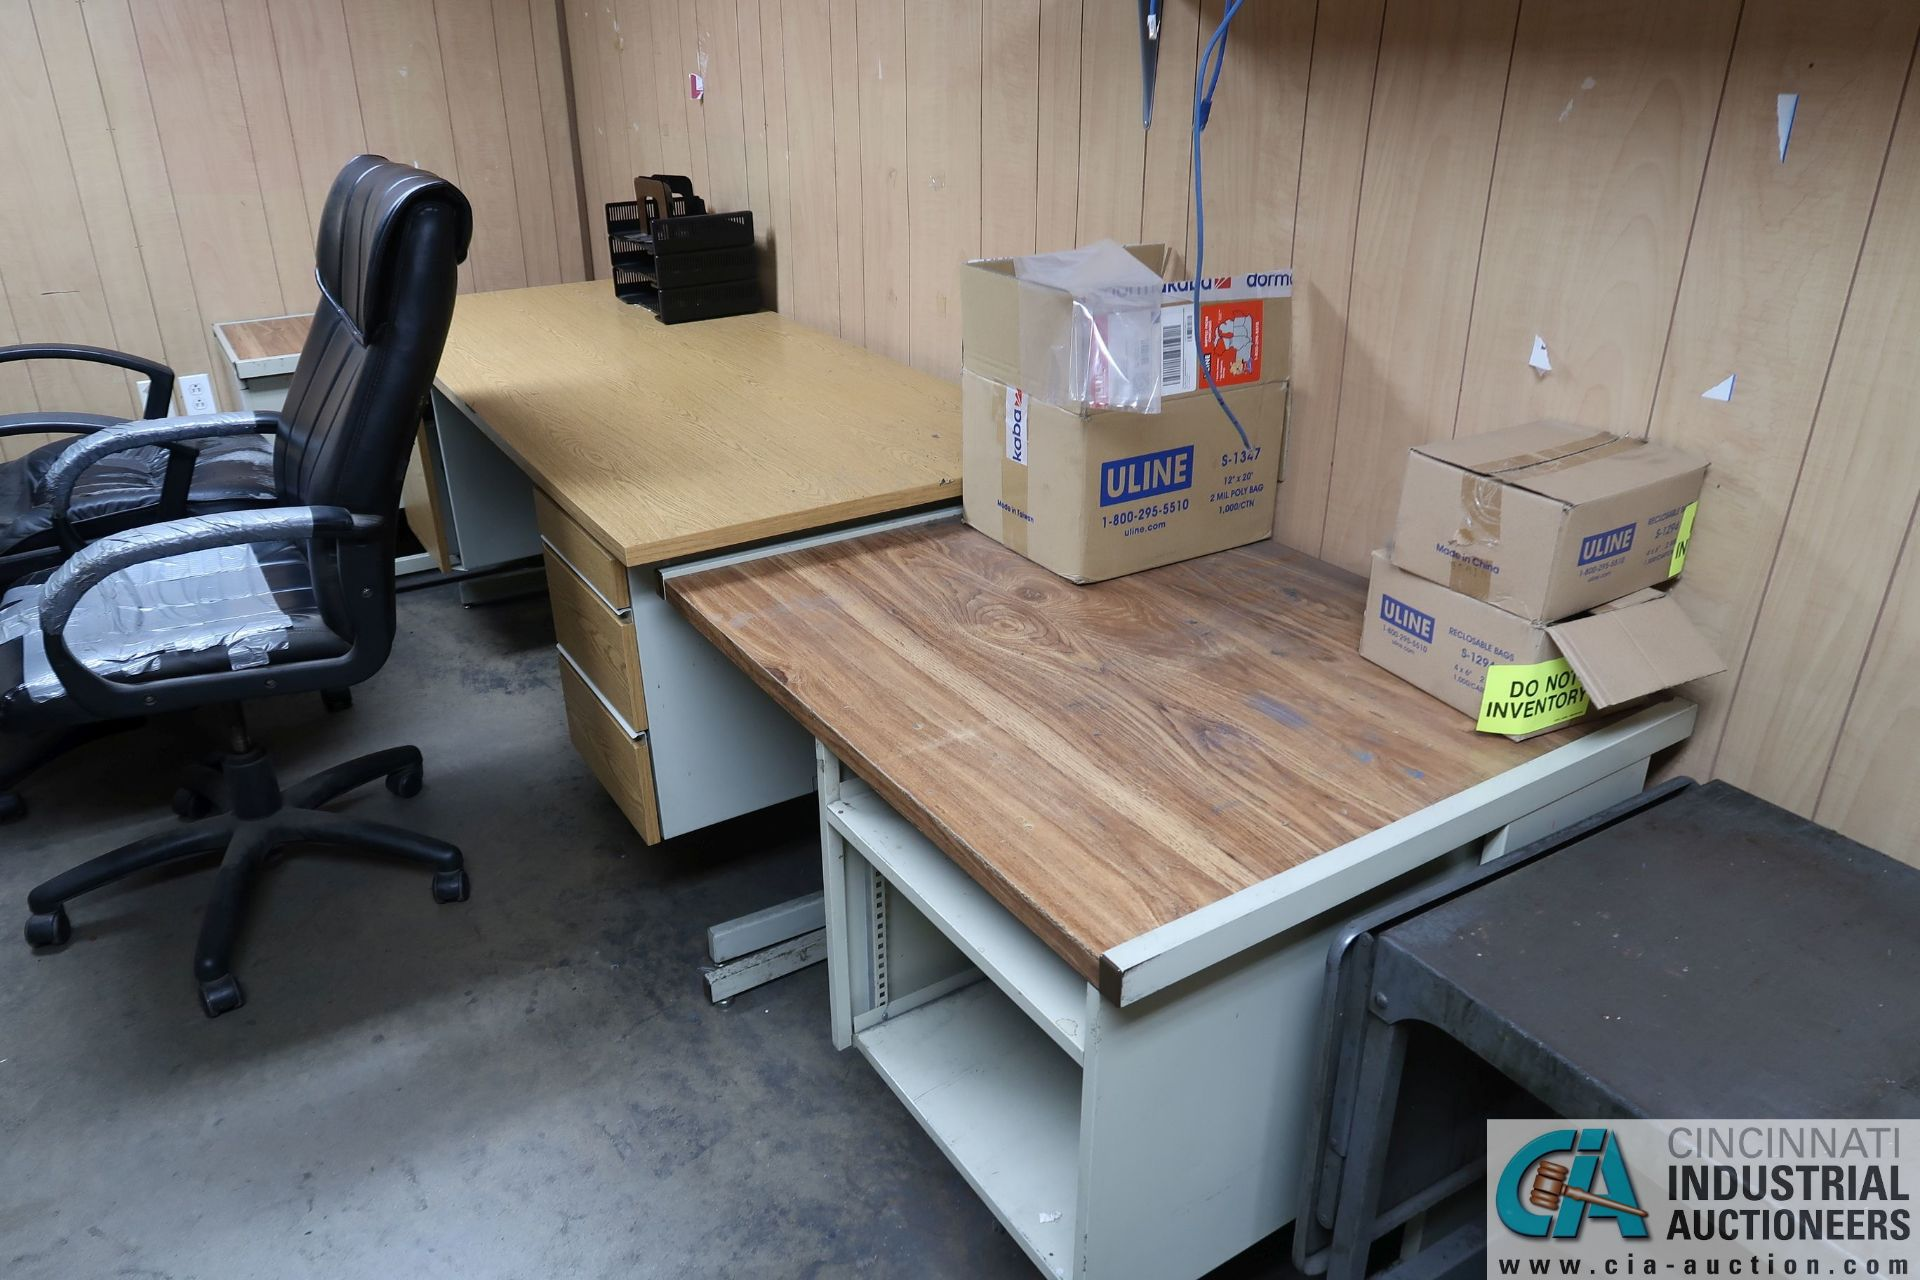 (LOT) DESKS, CHAIRS AND FILE CABINETS **NO AC UNIT** - Image 2 of 3